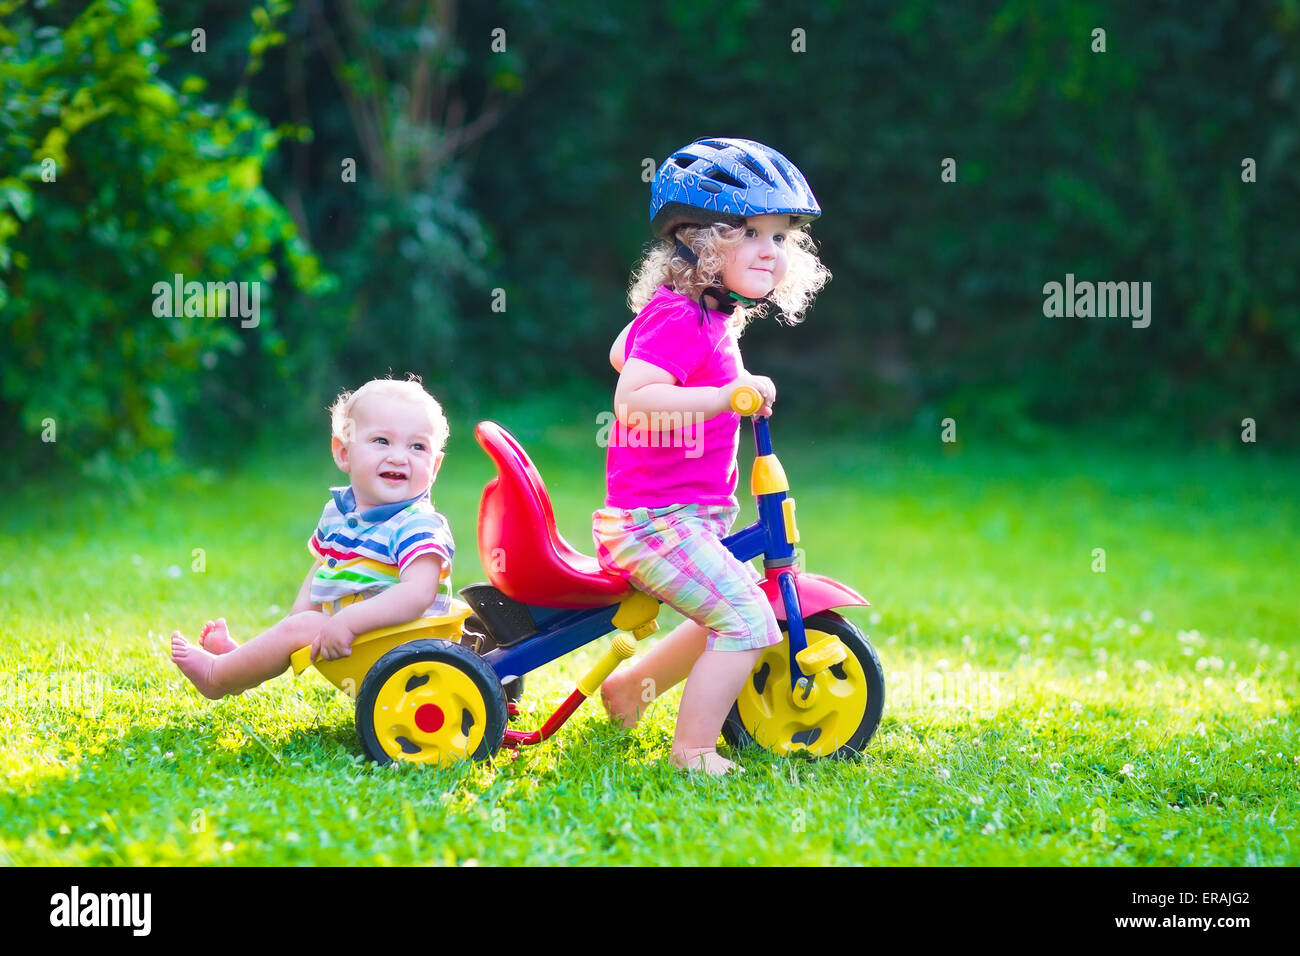 Children riding a bike. Kids enjoying a bicycle ride. Little preschooler girl and baby boy, brother and sister - Stock Image